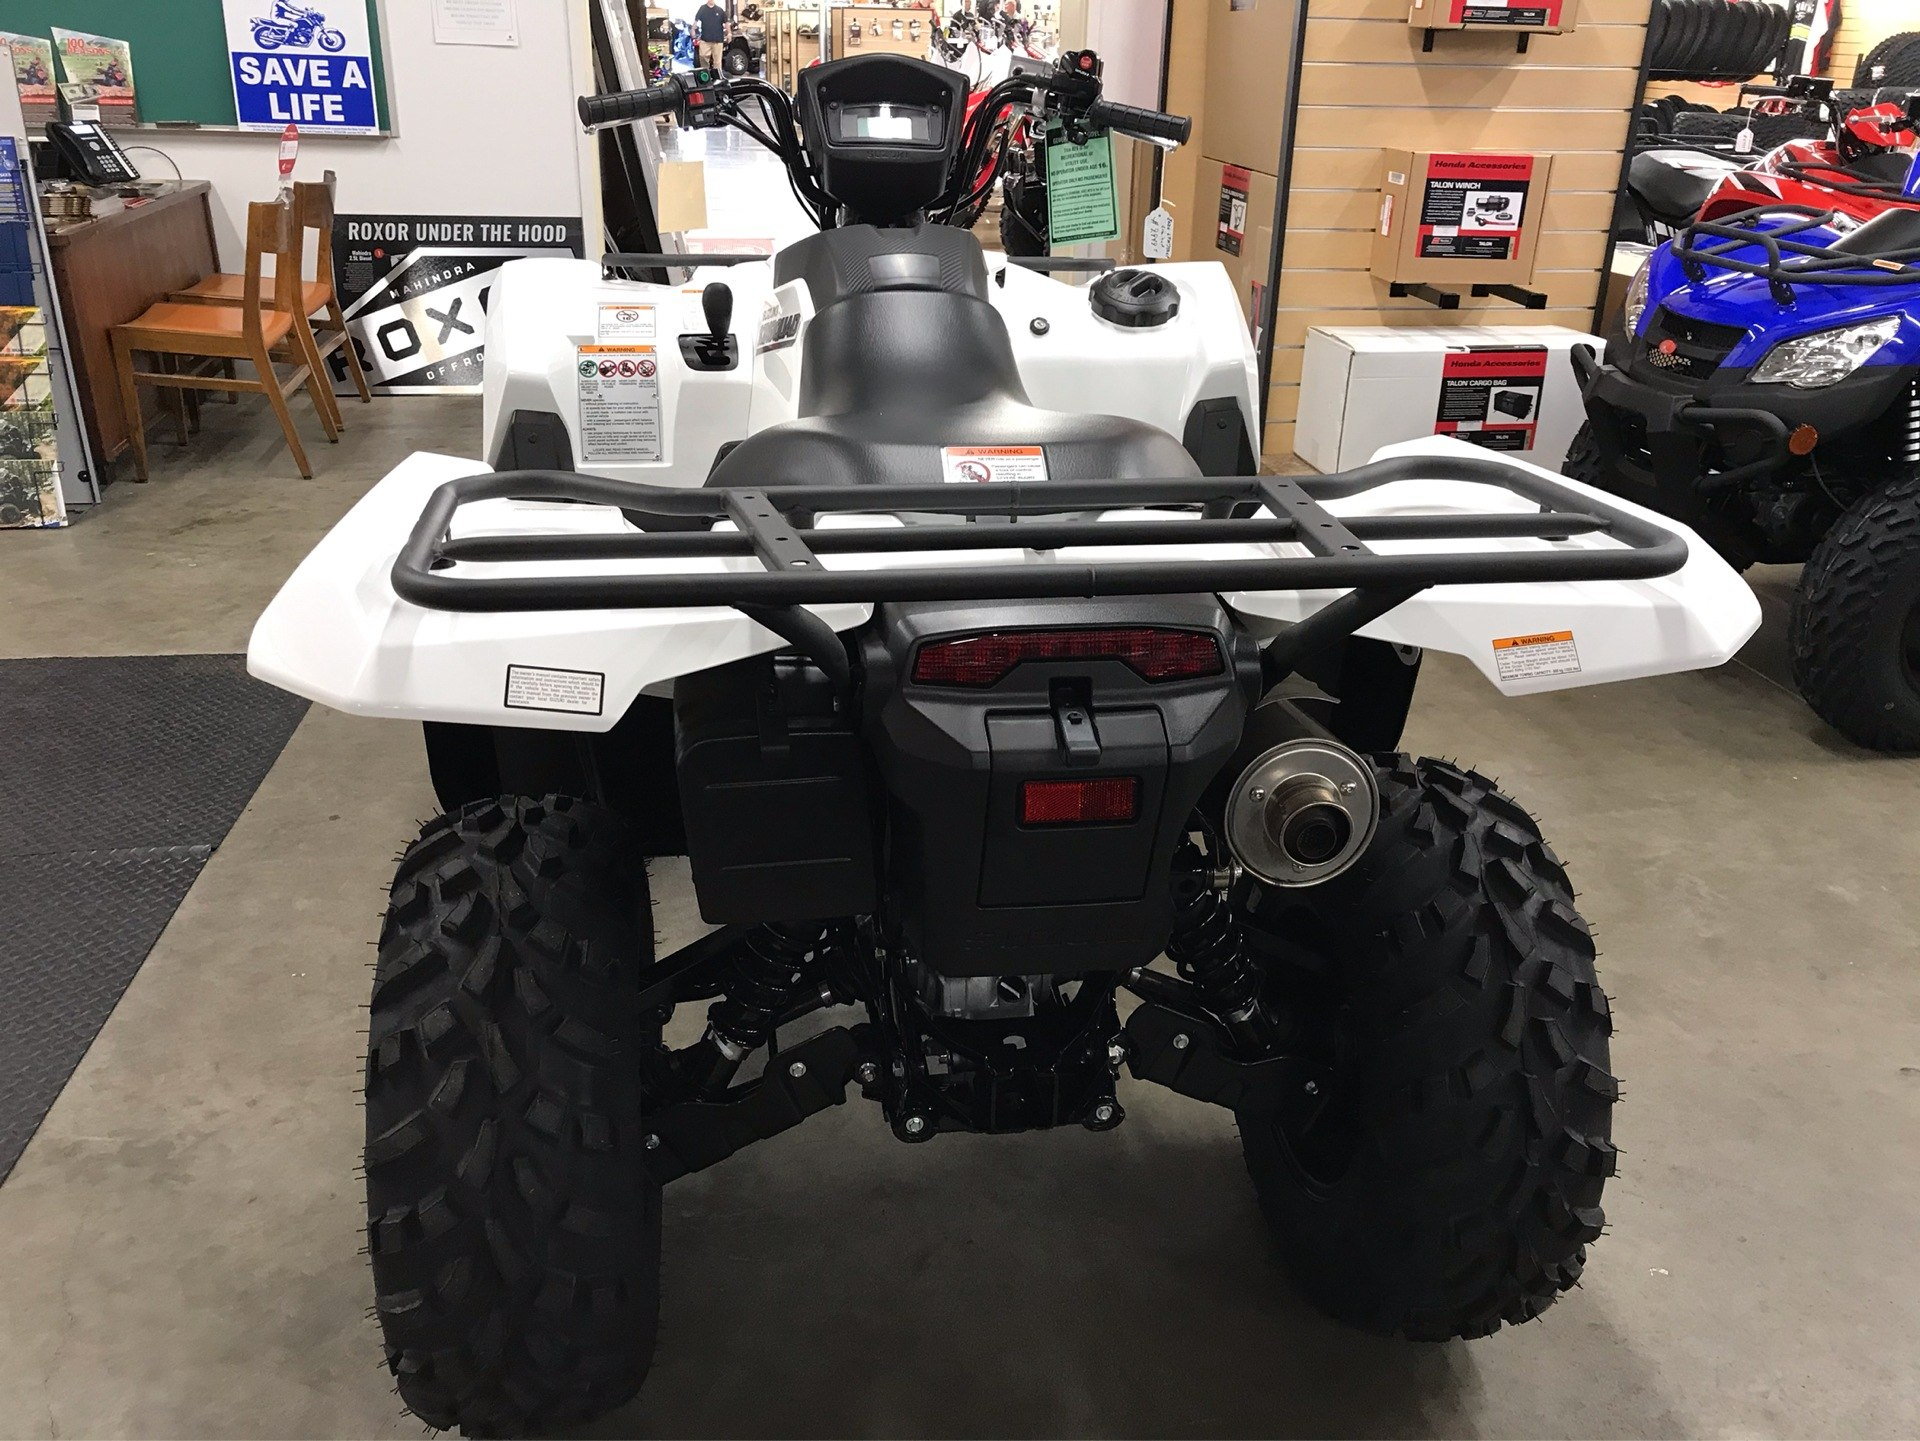 2020 Suzuki KingQuad 750AXi Power Steering SE in Sanford, North Carolina - Photo 4